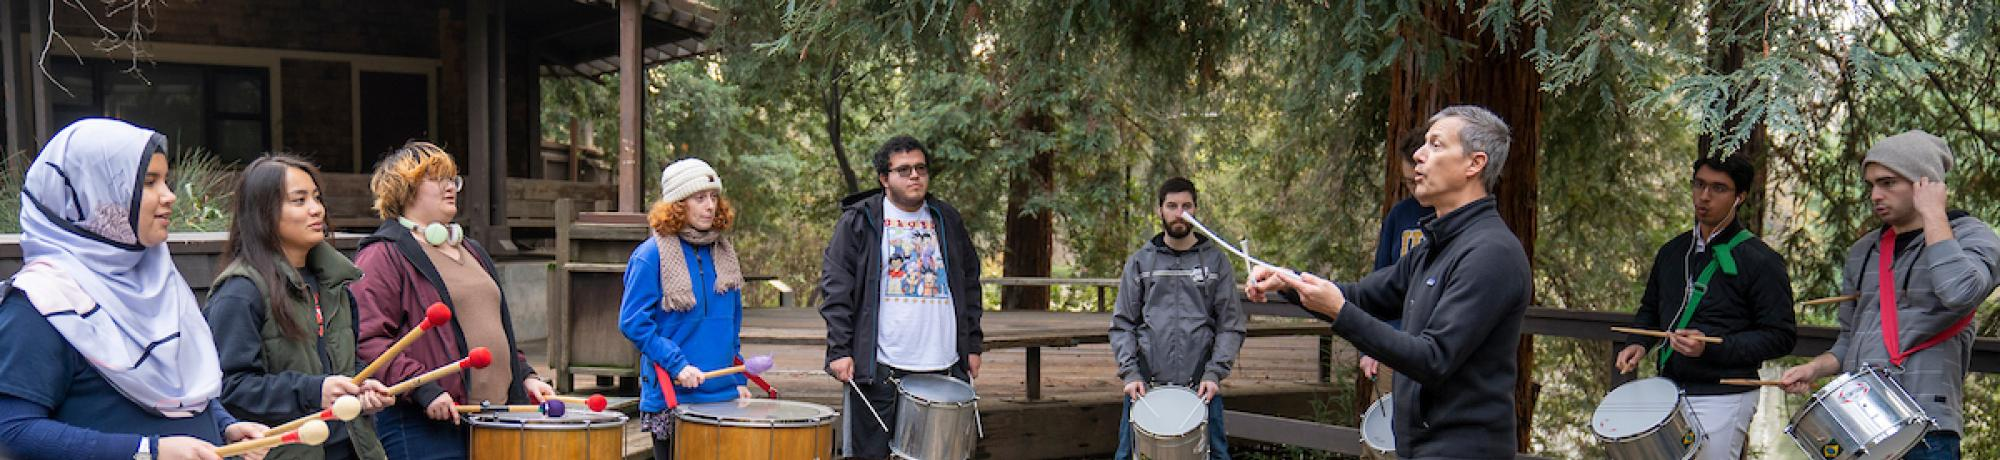 Samba drumming class on Wyatt deck in the UC Davis Arboretum on January 10, 2019.